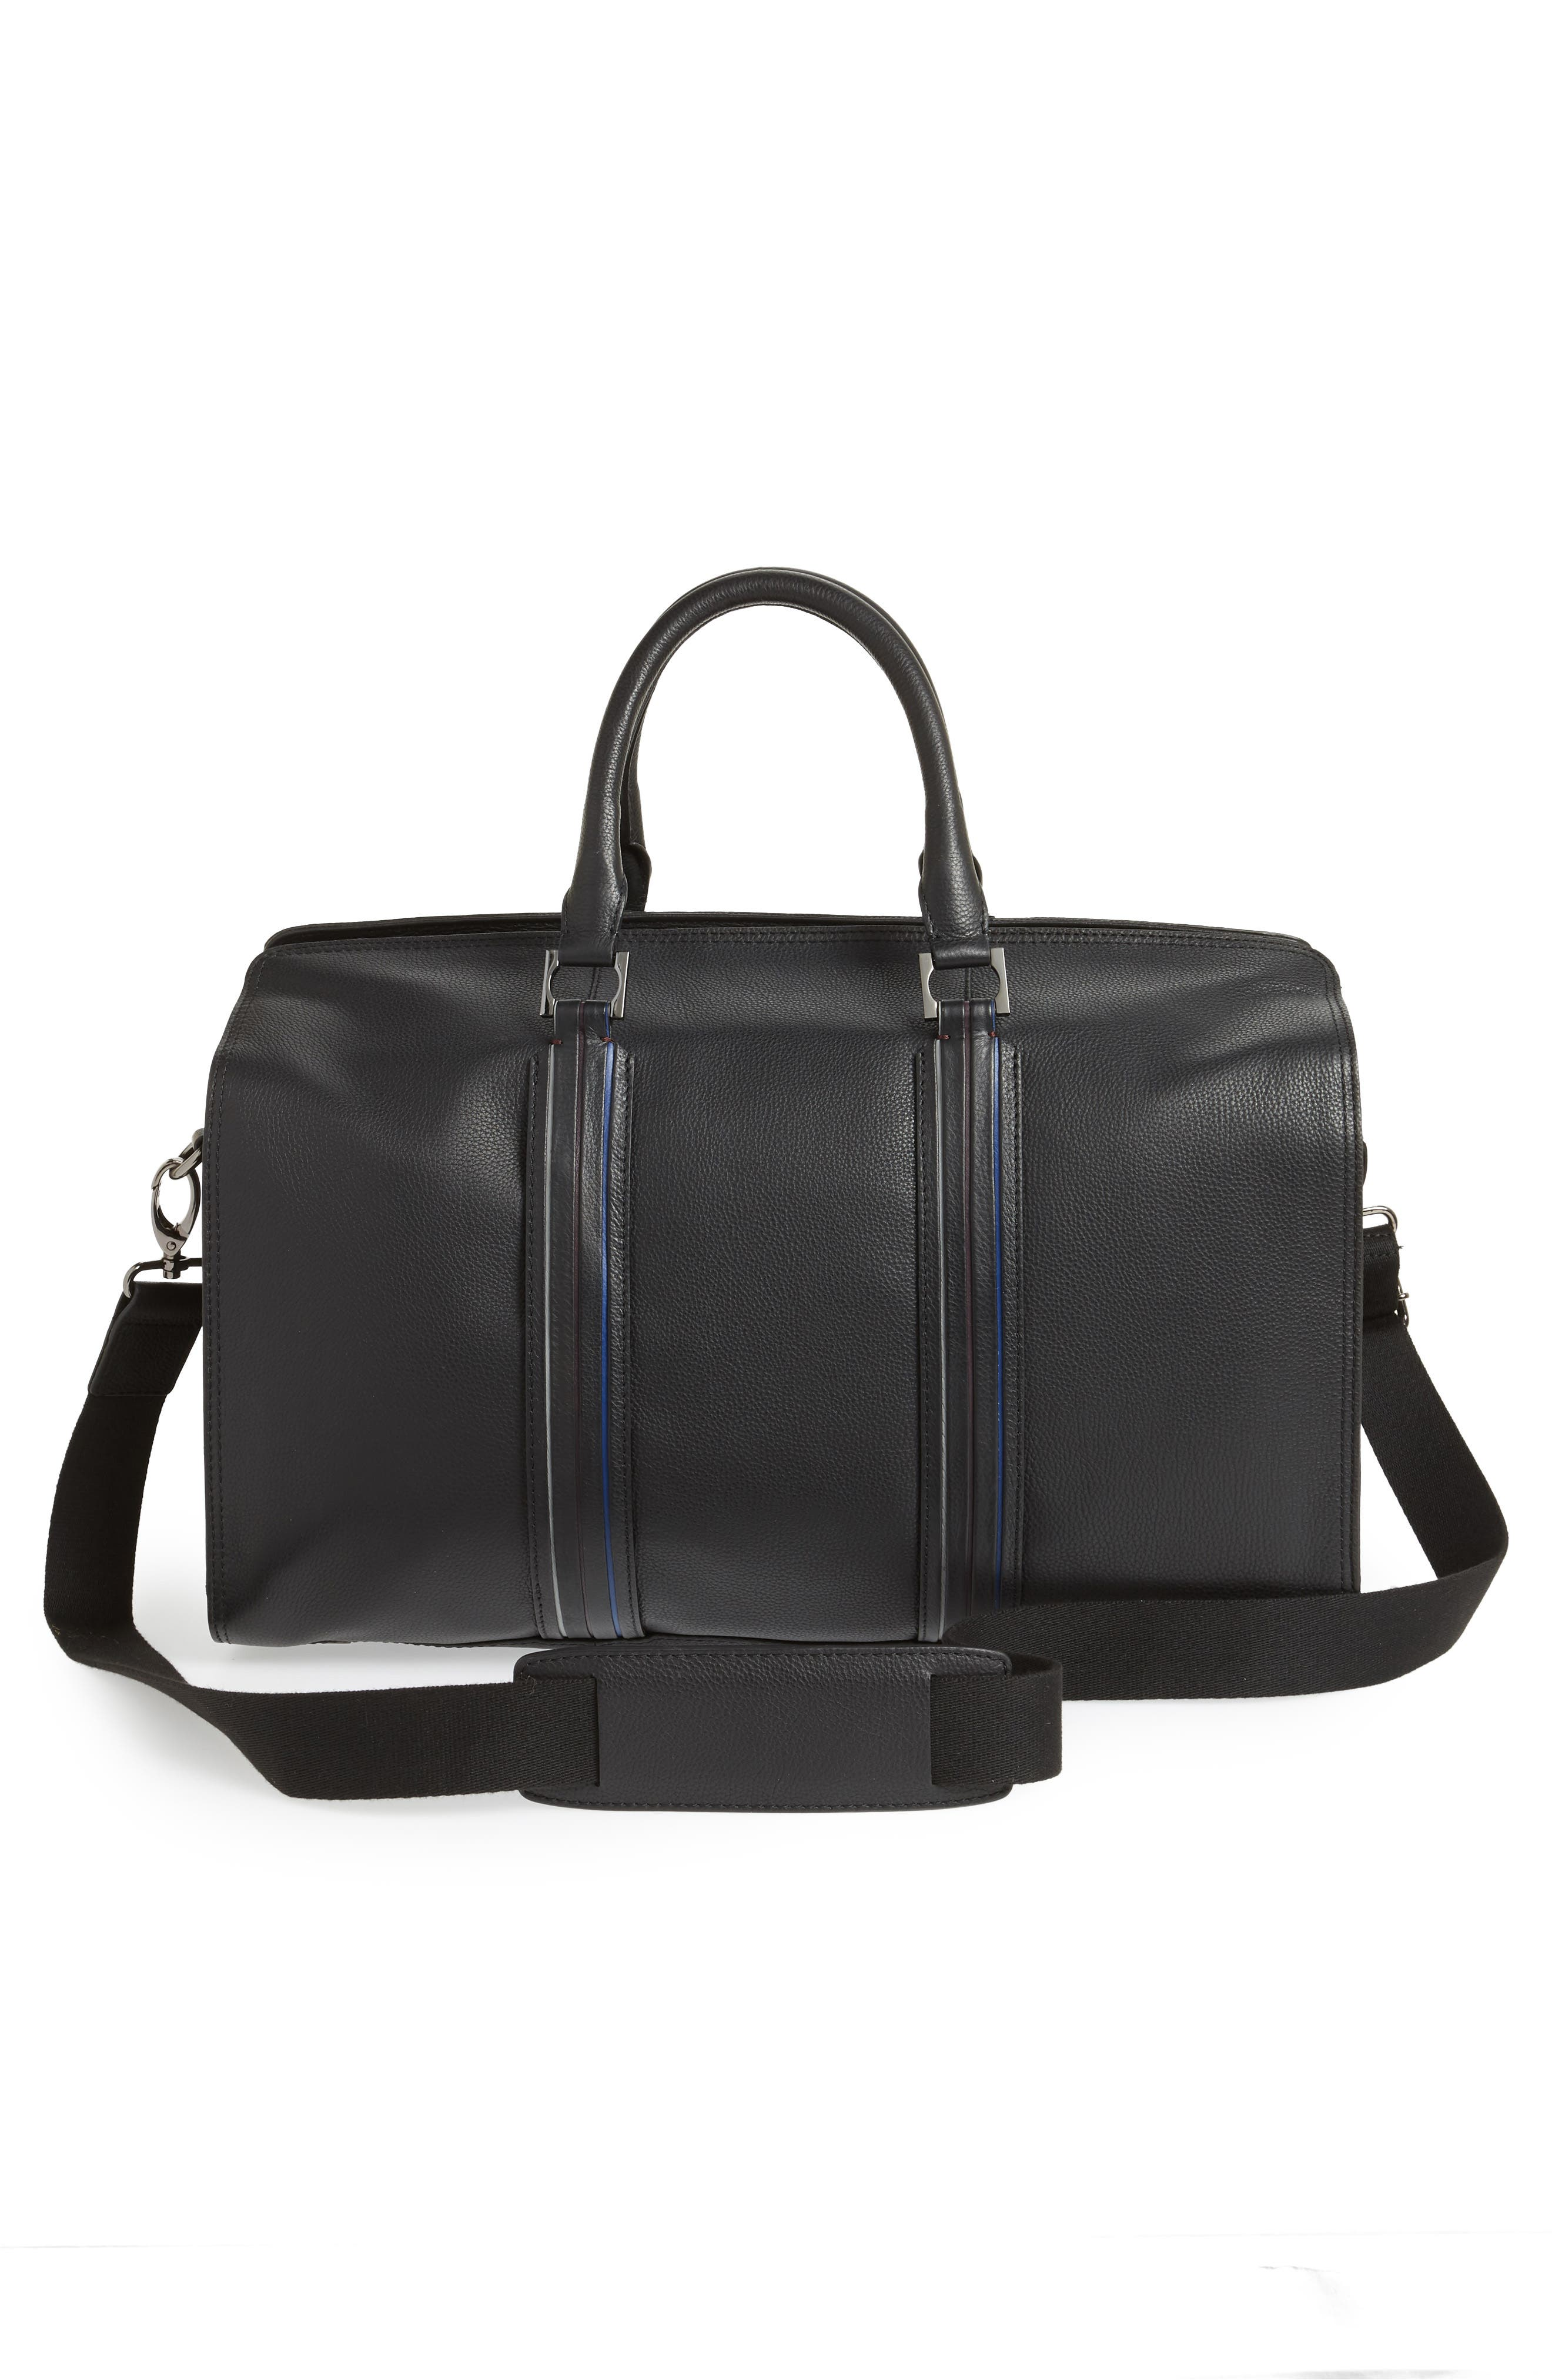 TED BAKER LONDON,                             Geeves Stripe Leather Duffel Bag,                             Alternate thumbnail 3, color,                             001